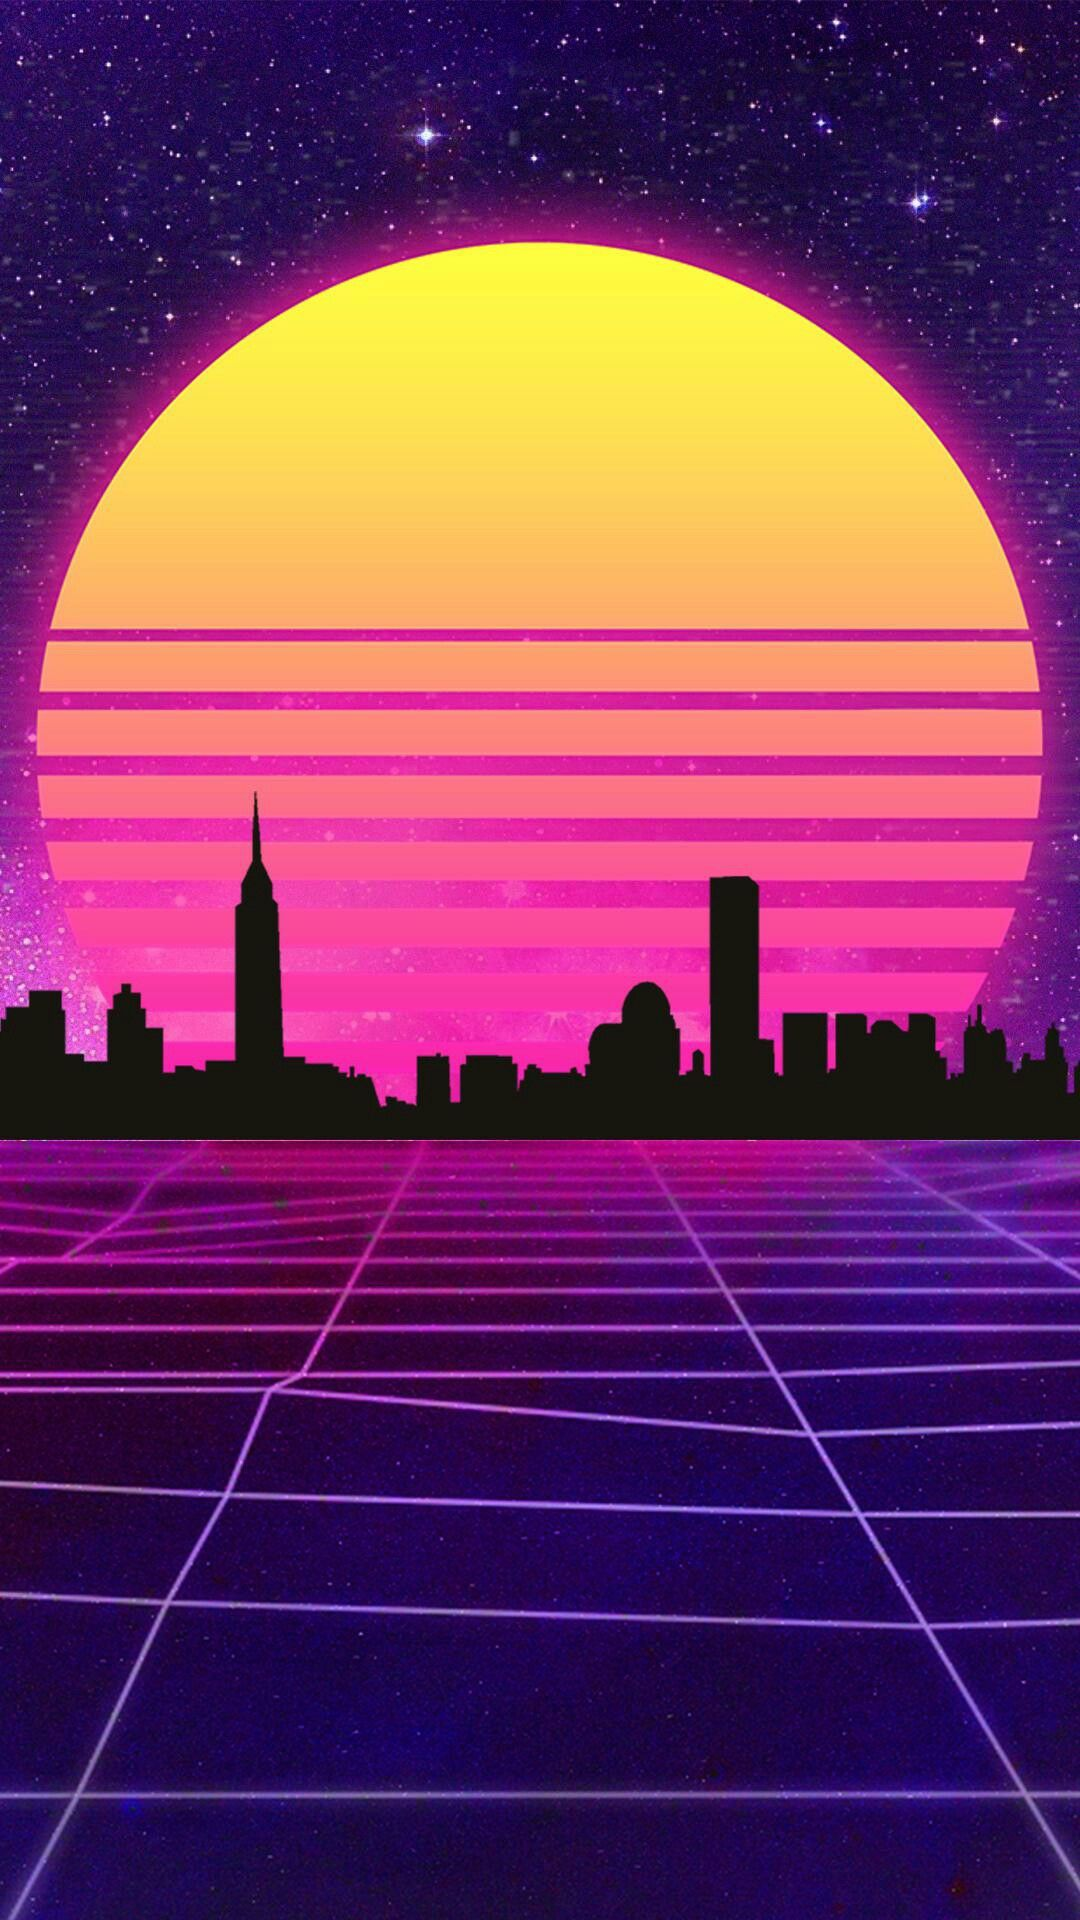 Pin by christina kirkendall on vaporwave wallpaper